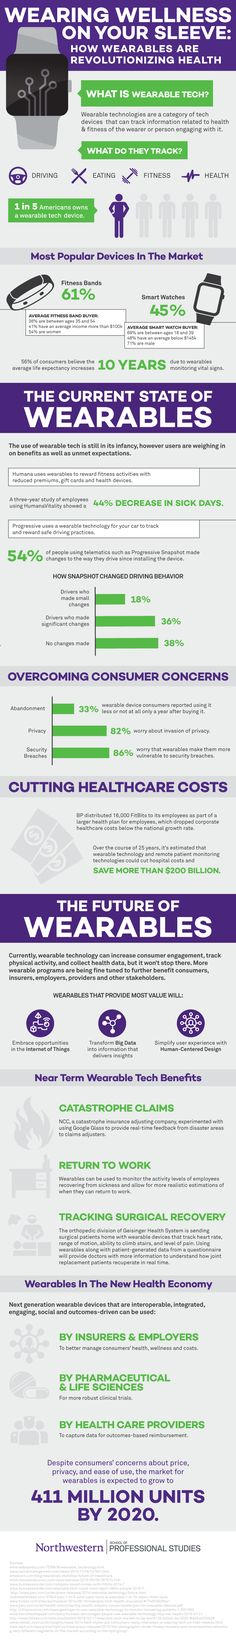 Wearing Wellness on your Sleeve: How Wearables Are Revolutionizing Healthcare #infographic